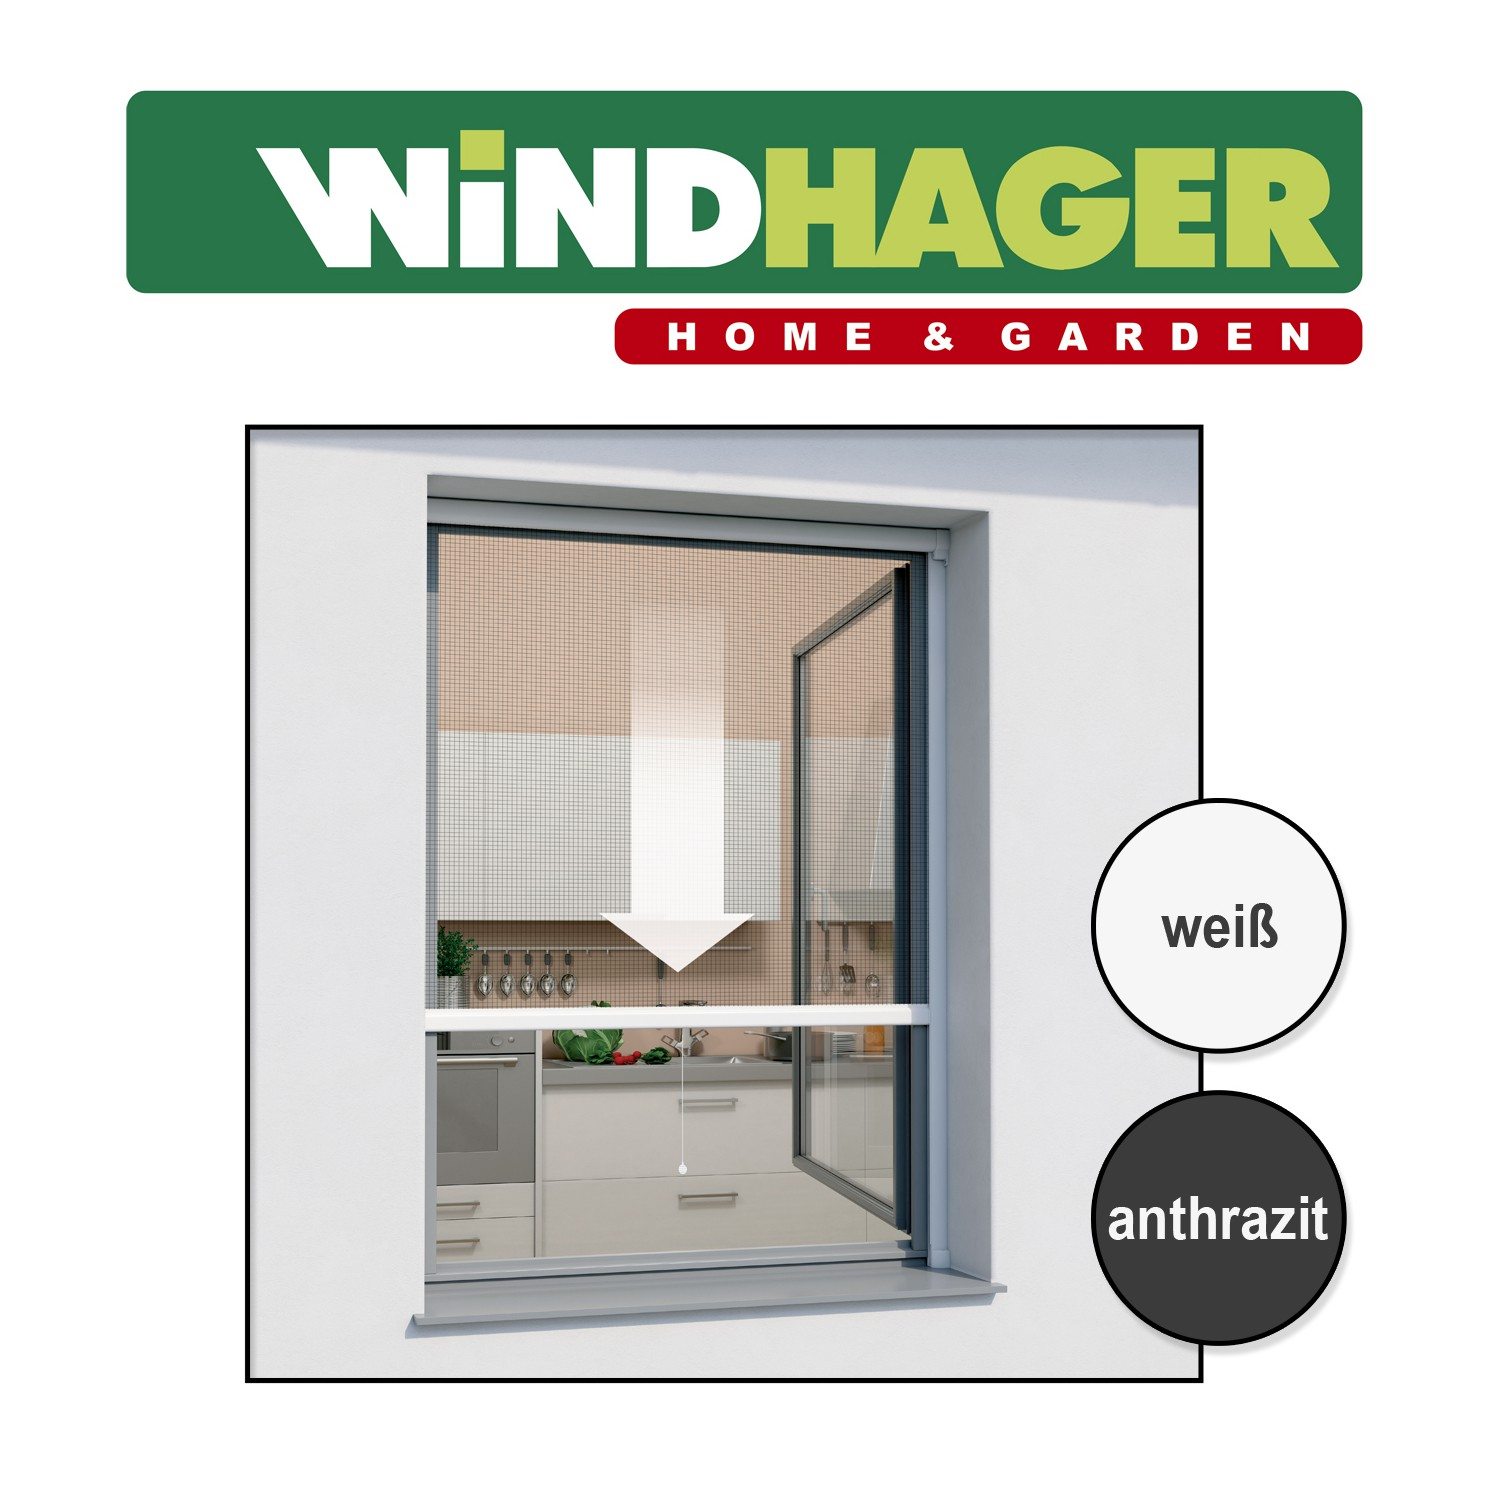 windhager insektenschutz vorh nge gitter rollos rahmen f r t ren fenster ebay. Black Bedroom Furniture Sets. Home Design Ideas